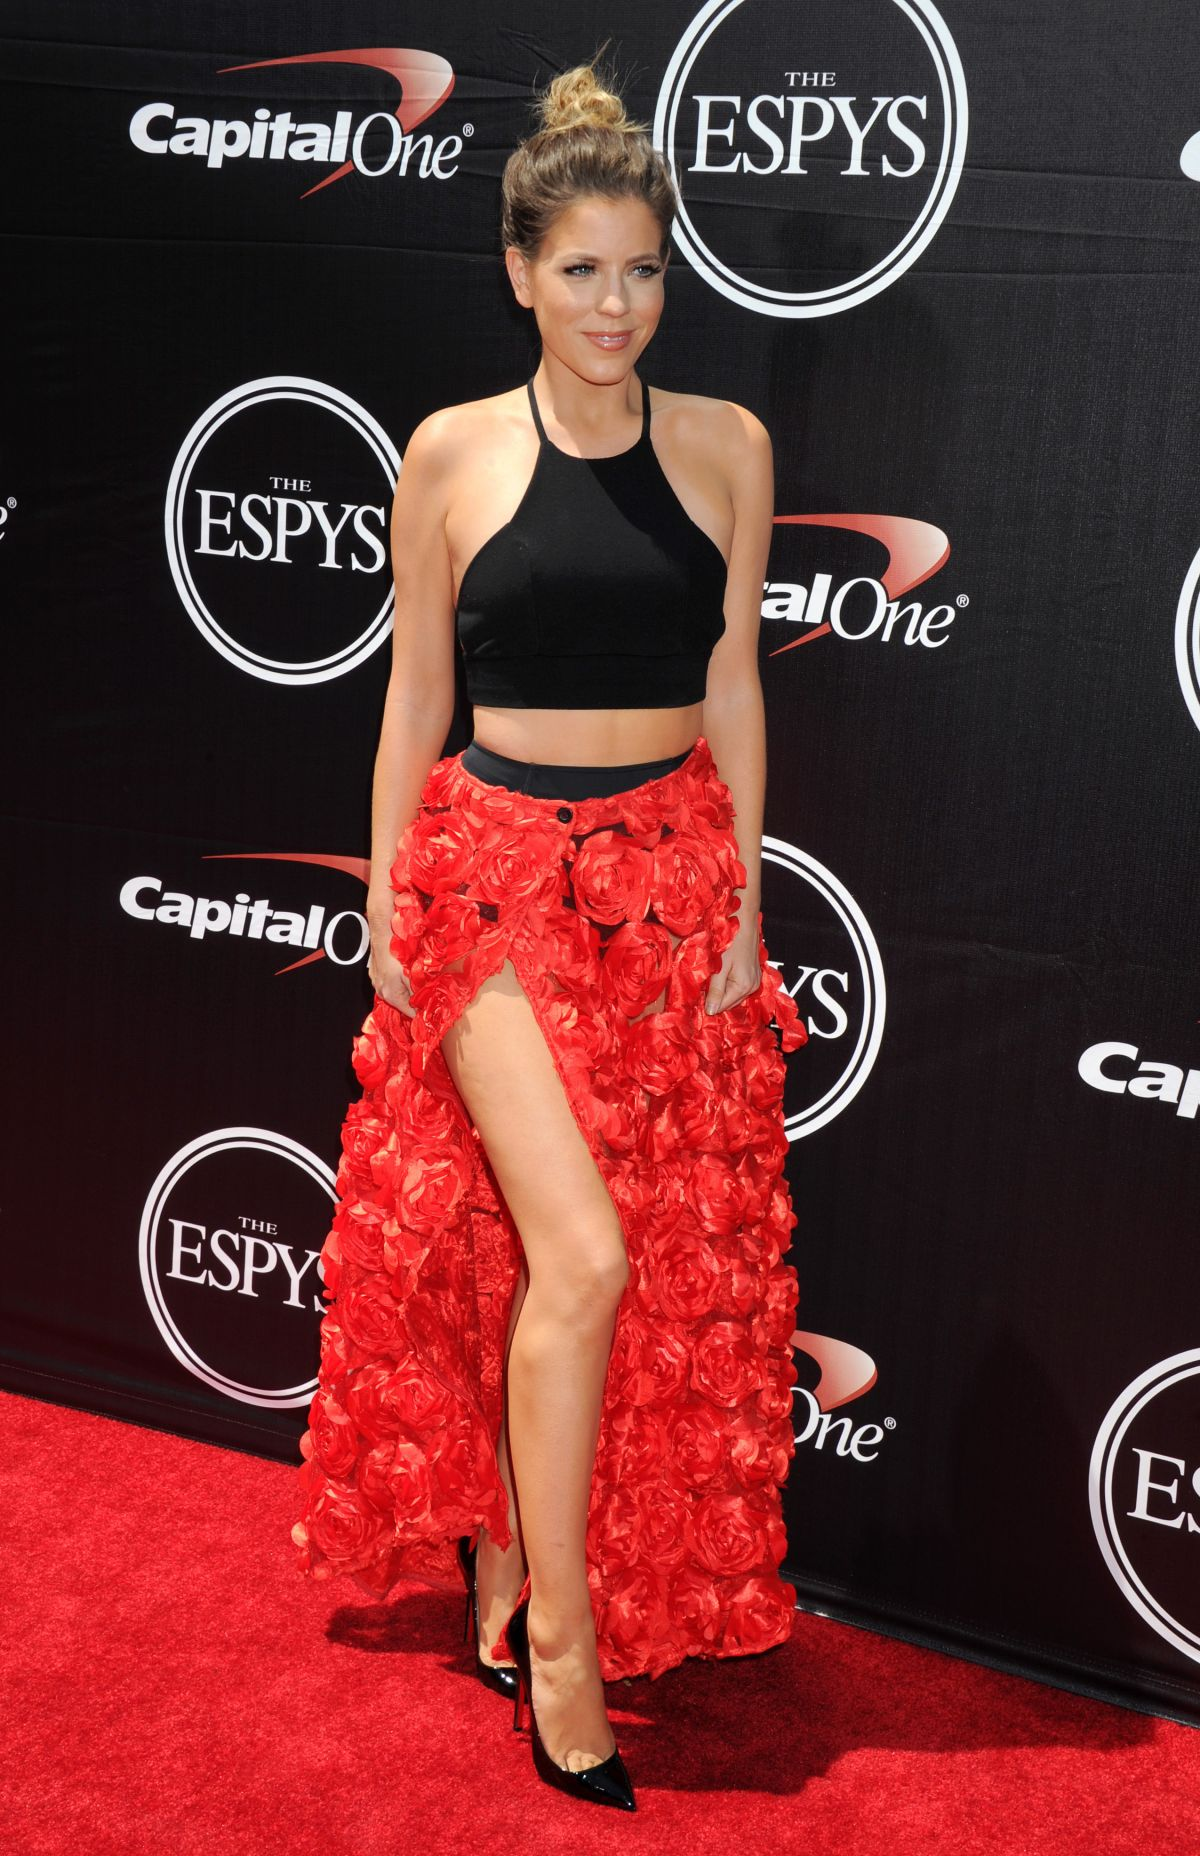 STEPHANIE BAUER at 2015 Espys Awards in Los Angeles